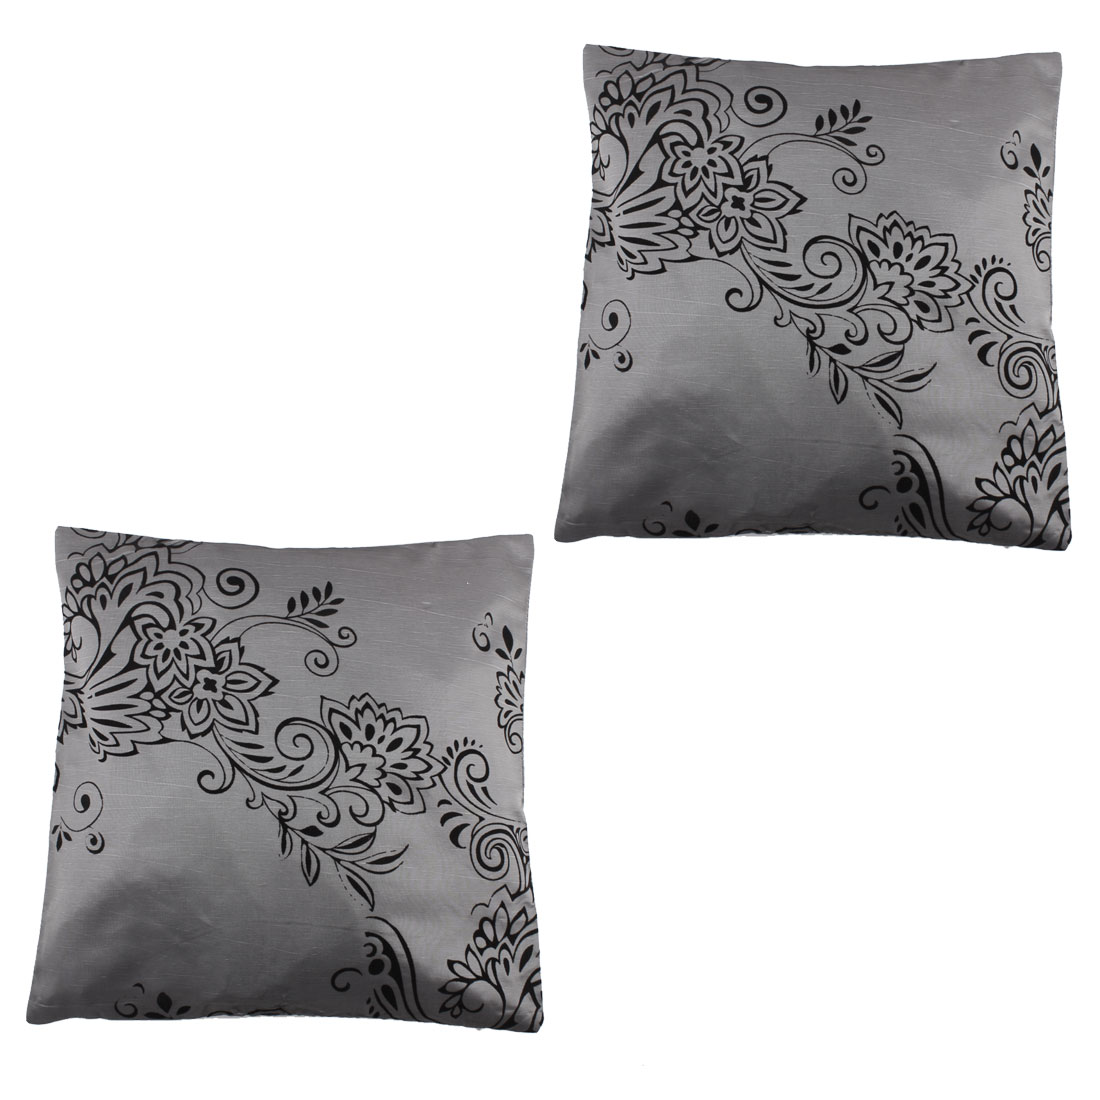 Fabric Single Side Floral Pattern Car Seat Waist Cushion Pillow Cover 43 x 43cm 2pcs